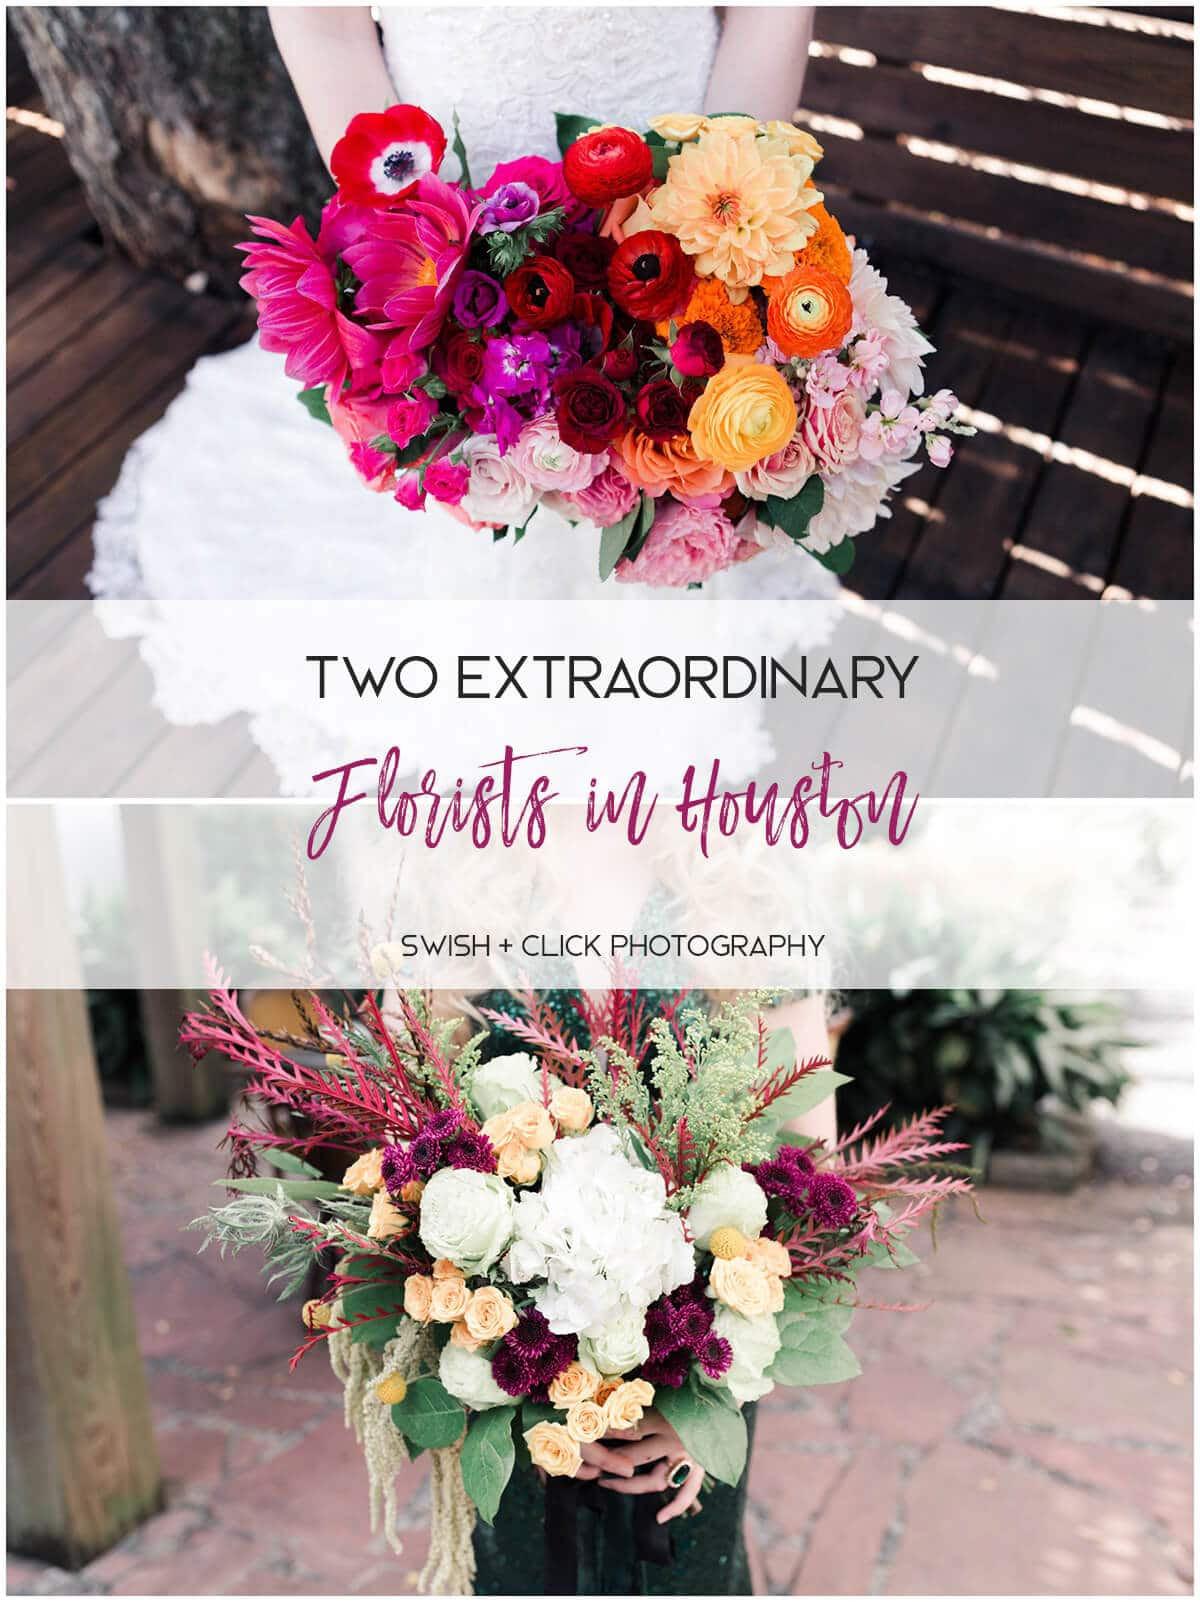 bougie wedding bouquet at 5226 Elm Events in Houston Texas by Swish and Click Photography